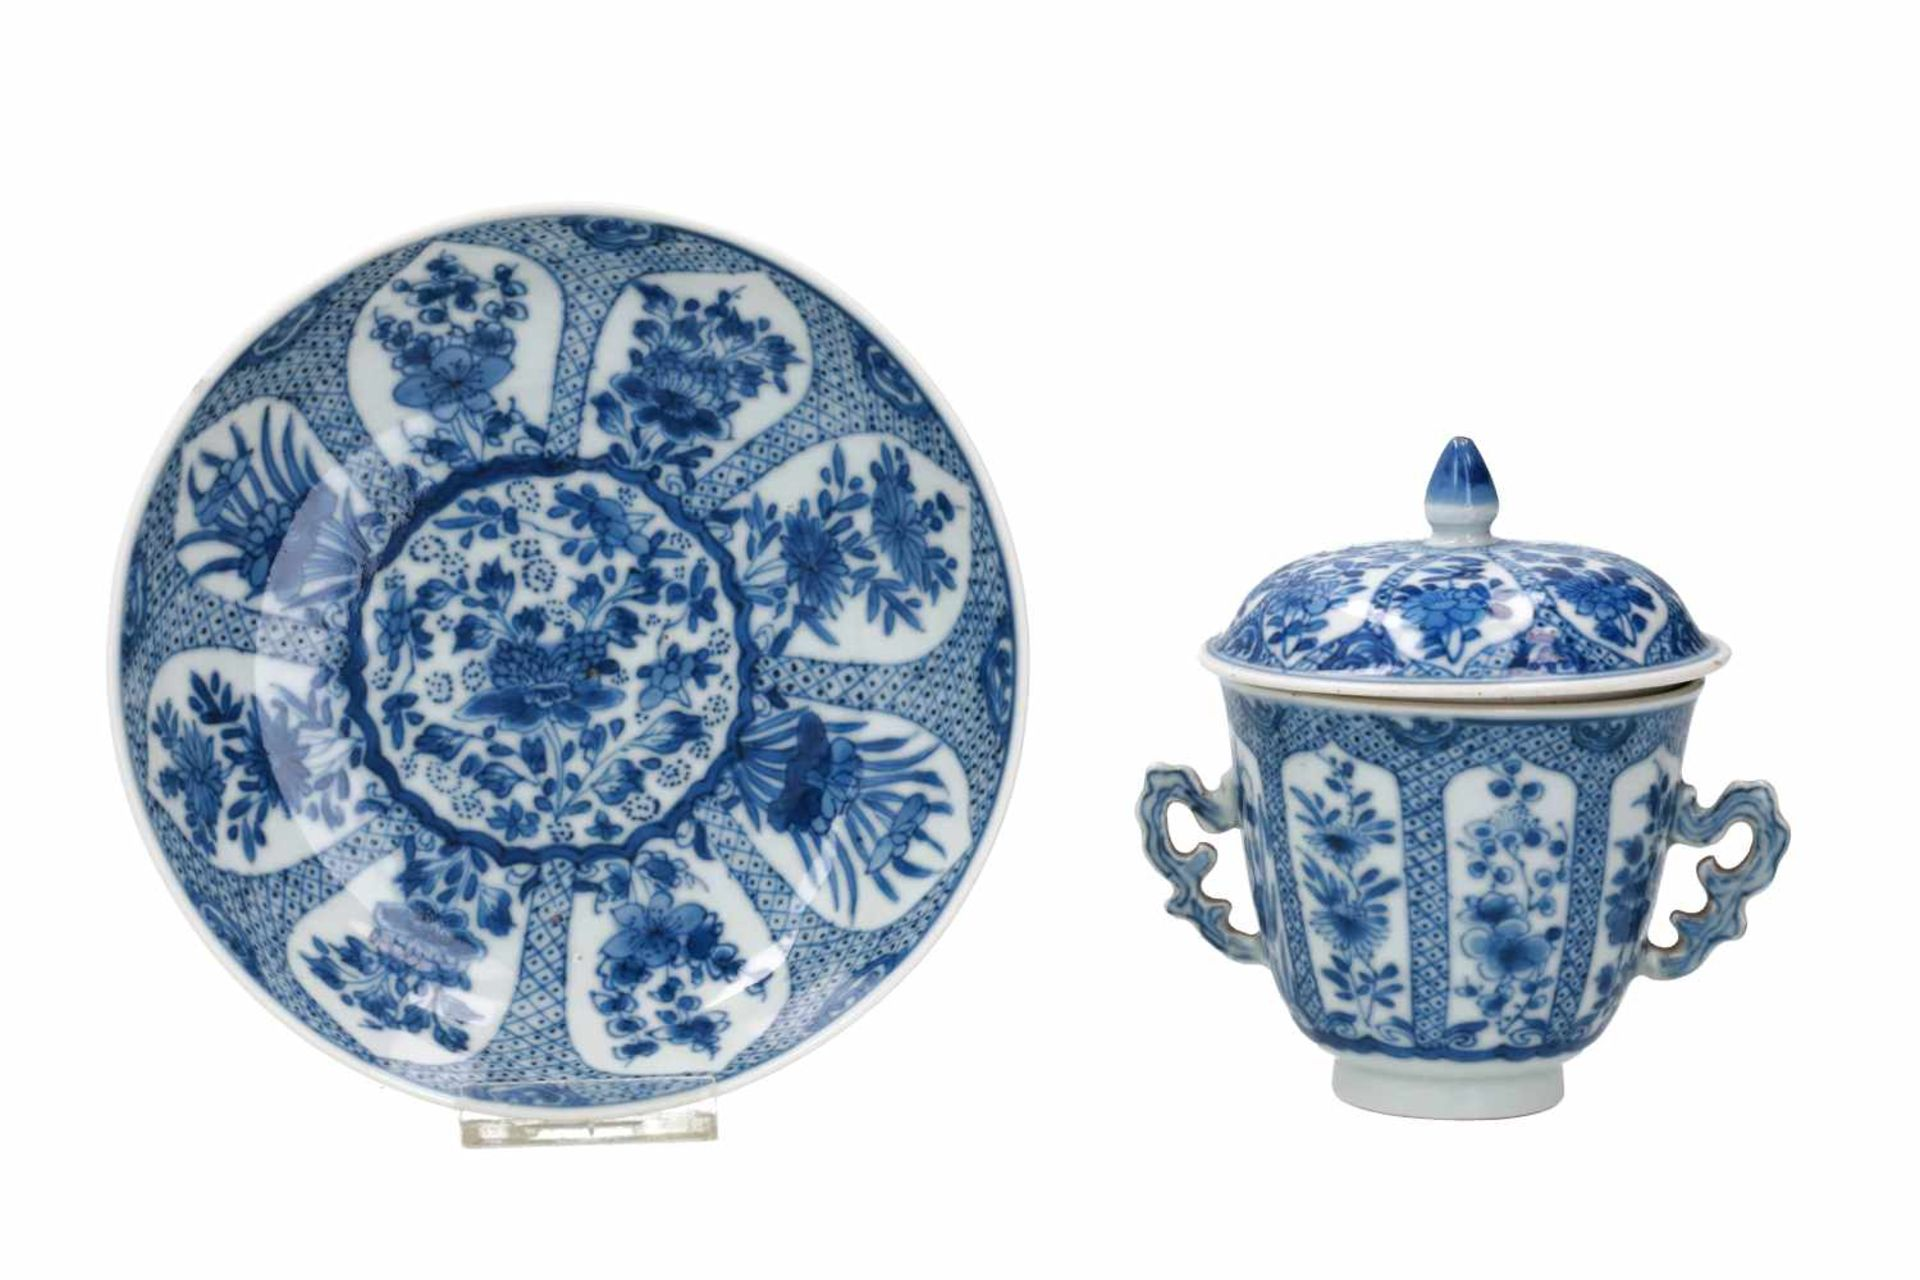 A blue and white porcelain lidded cup with two handles on a deep saucer, decorated with flowers.